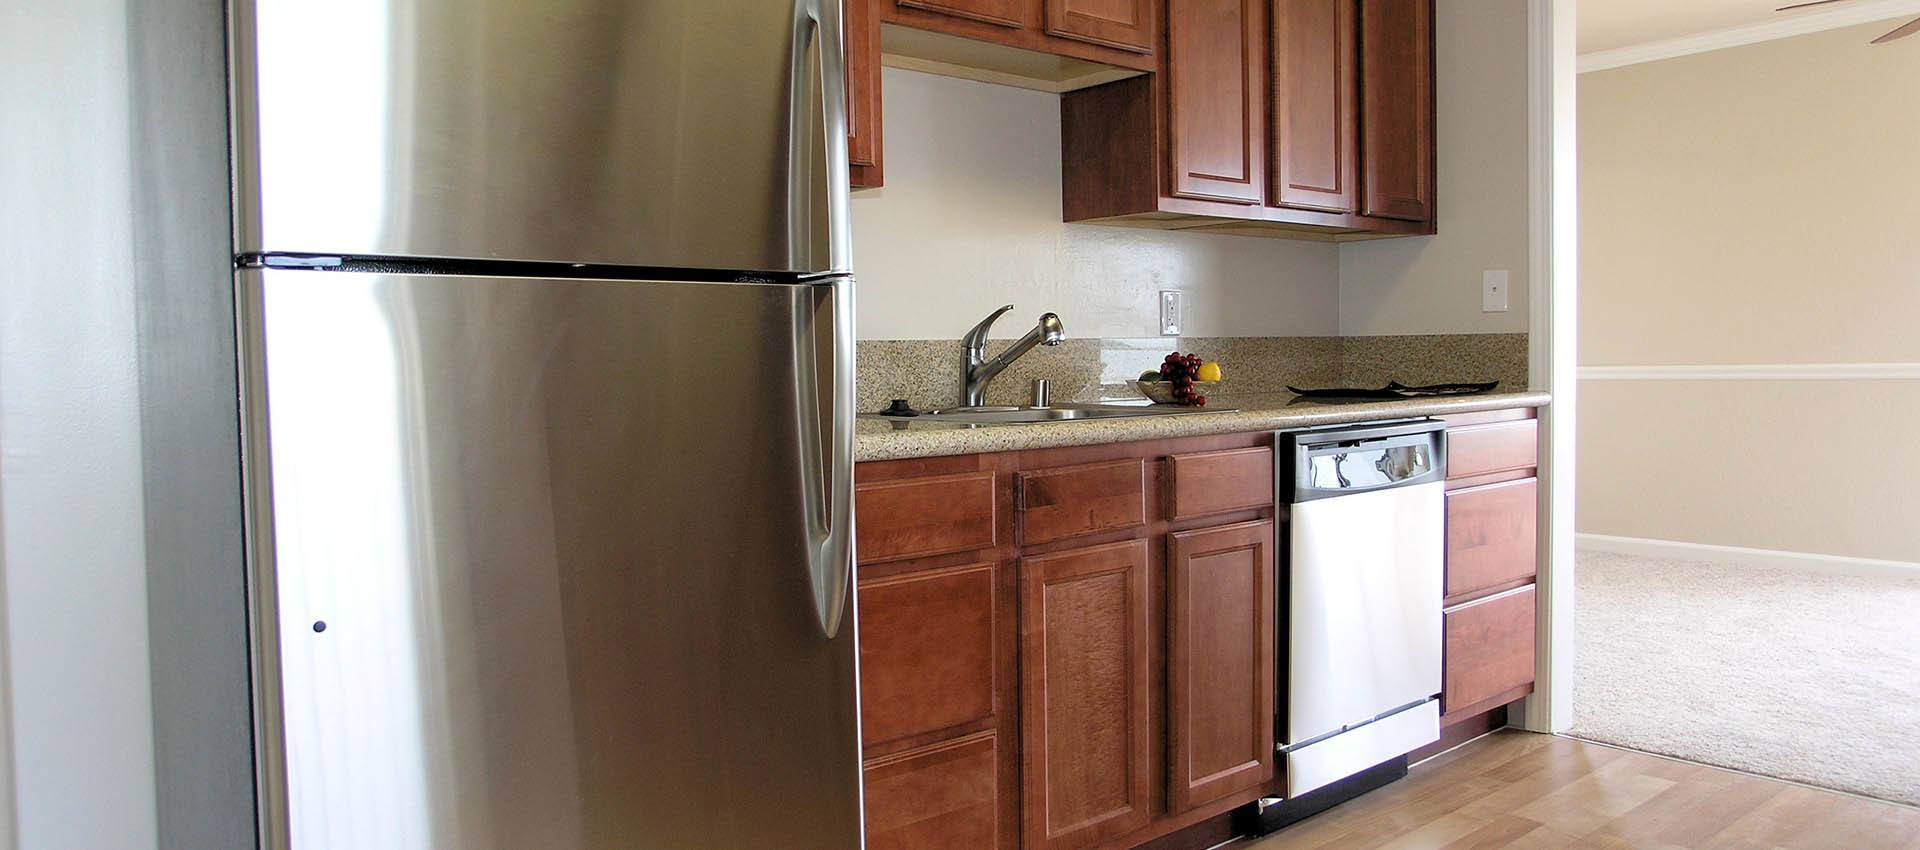 Stainless steel appliances at apartments in Alameda, CA